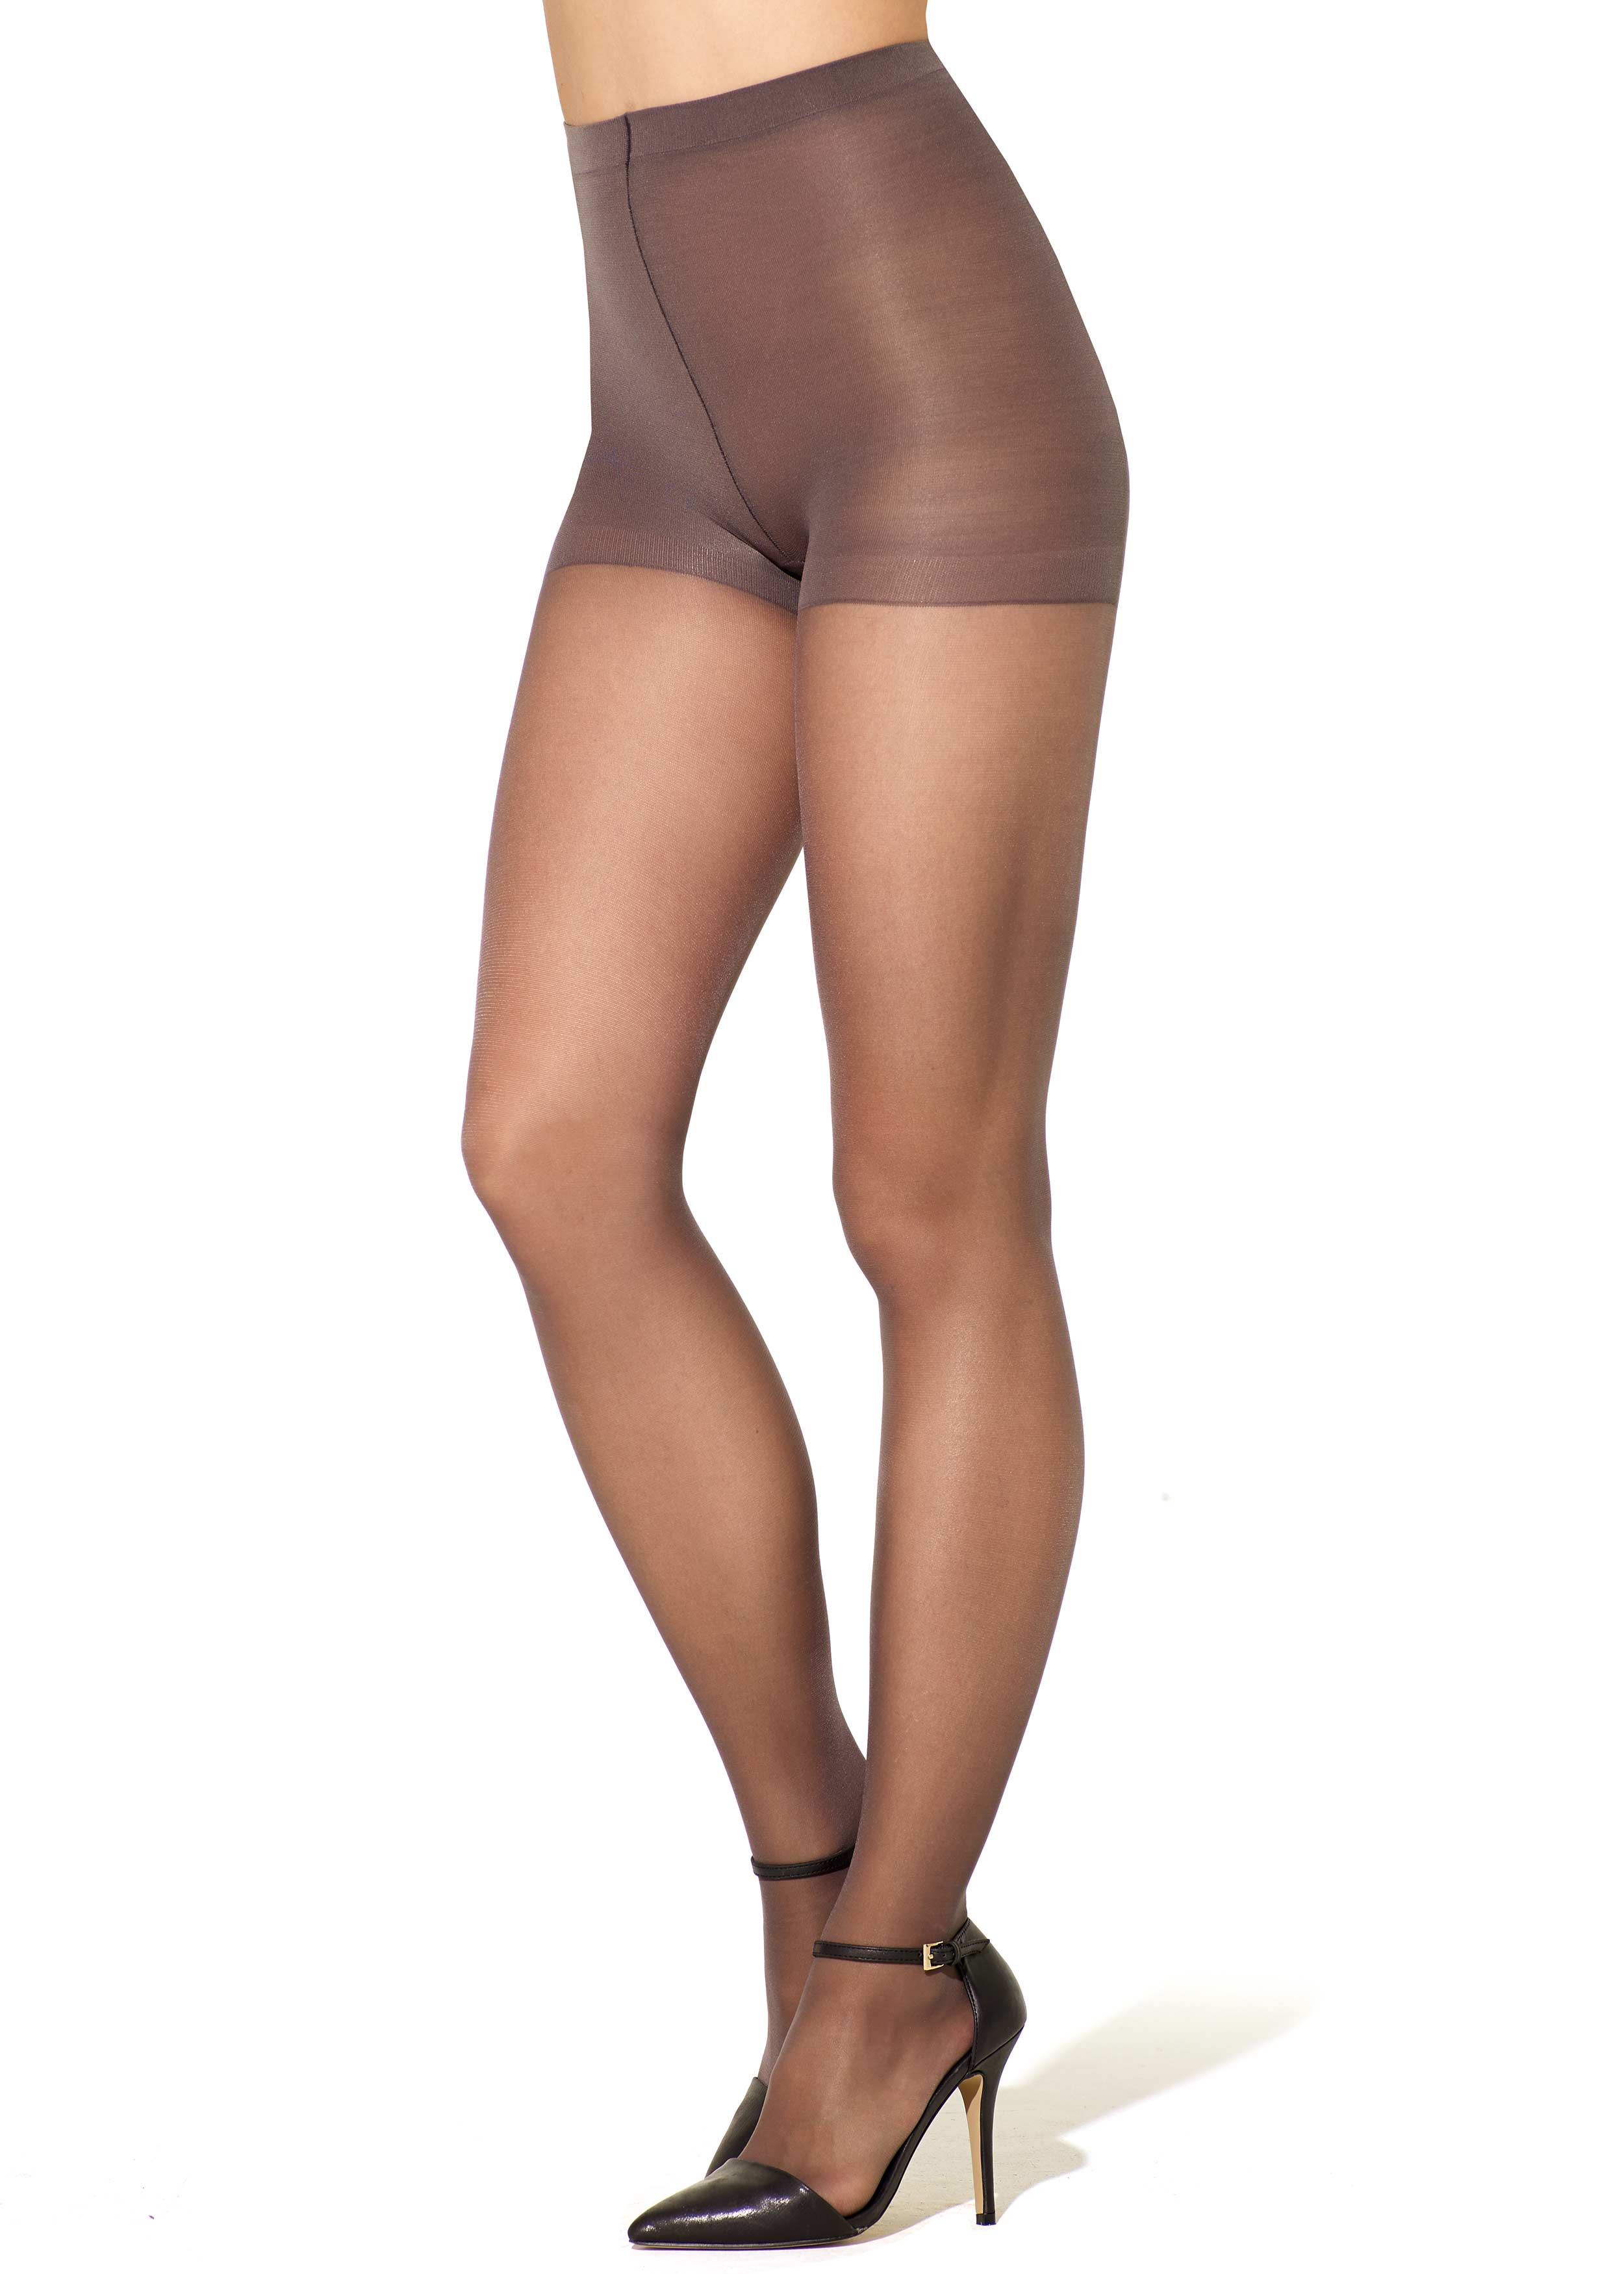 f497887fc97 Silkies Ultra TLC Total Leg Control Support Pantyhose